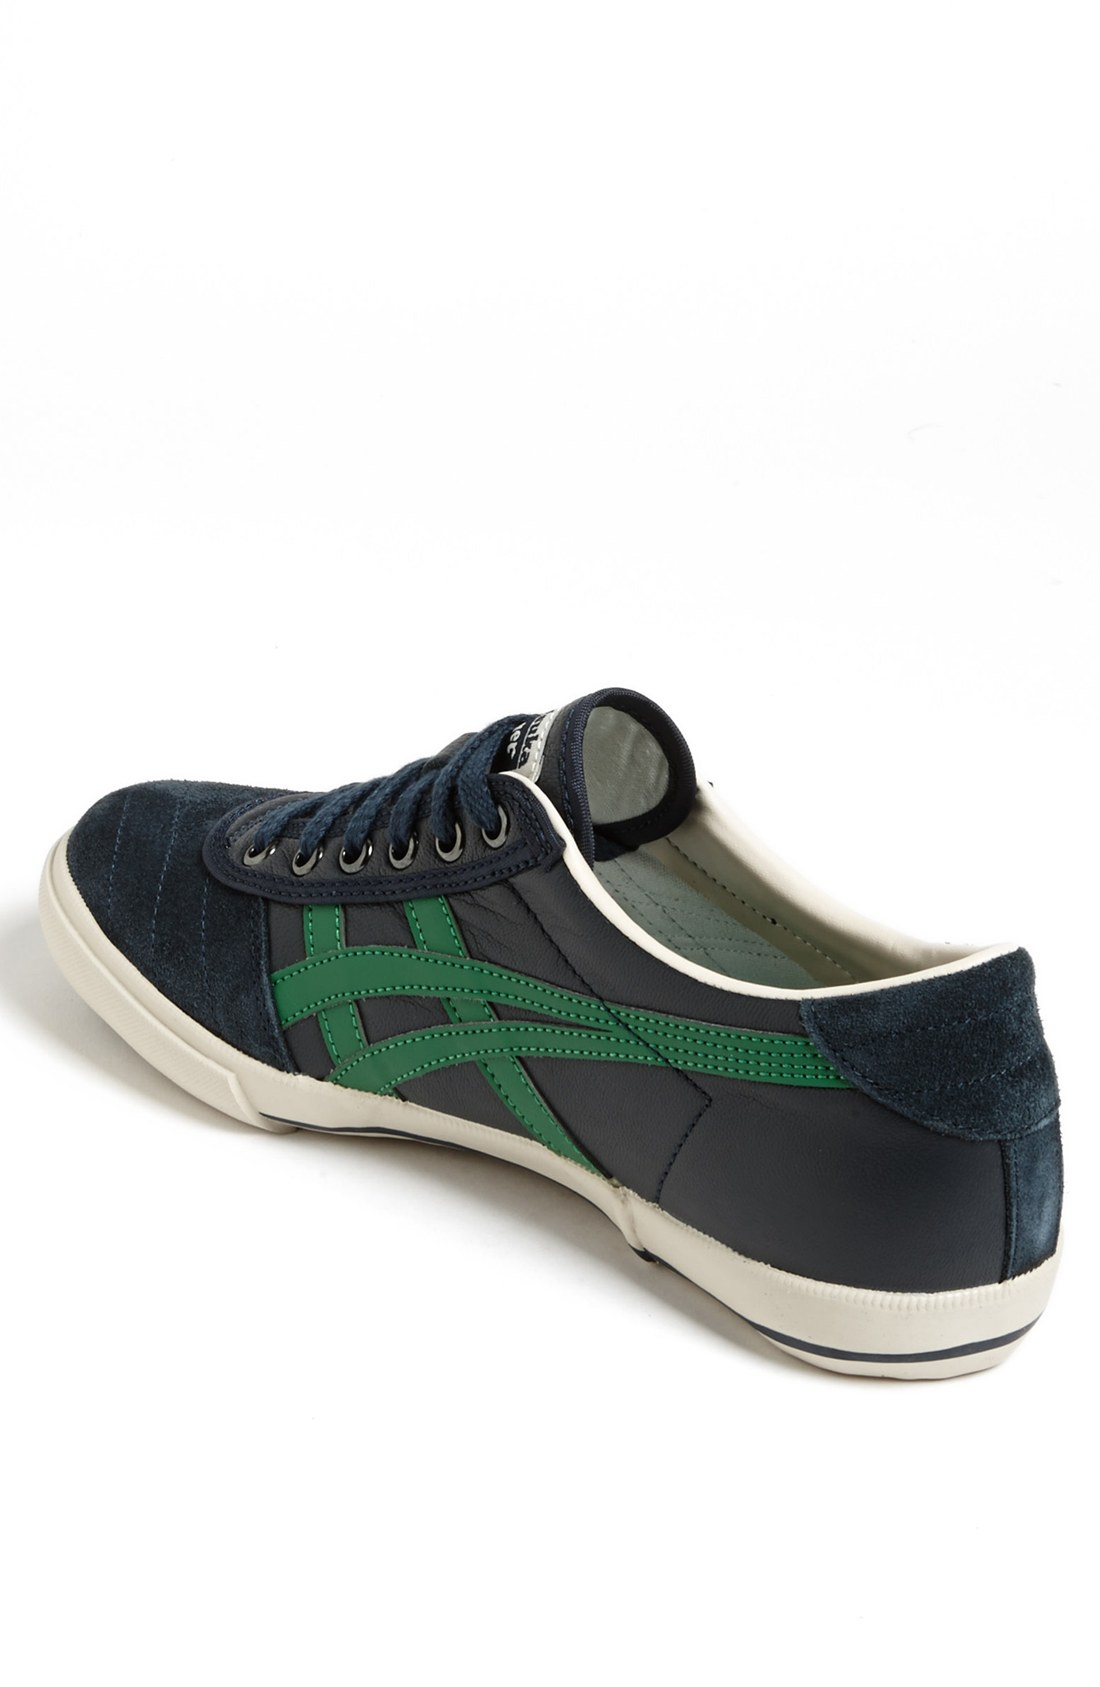 onitsuka tiger rotation 77 fashion sneaker